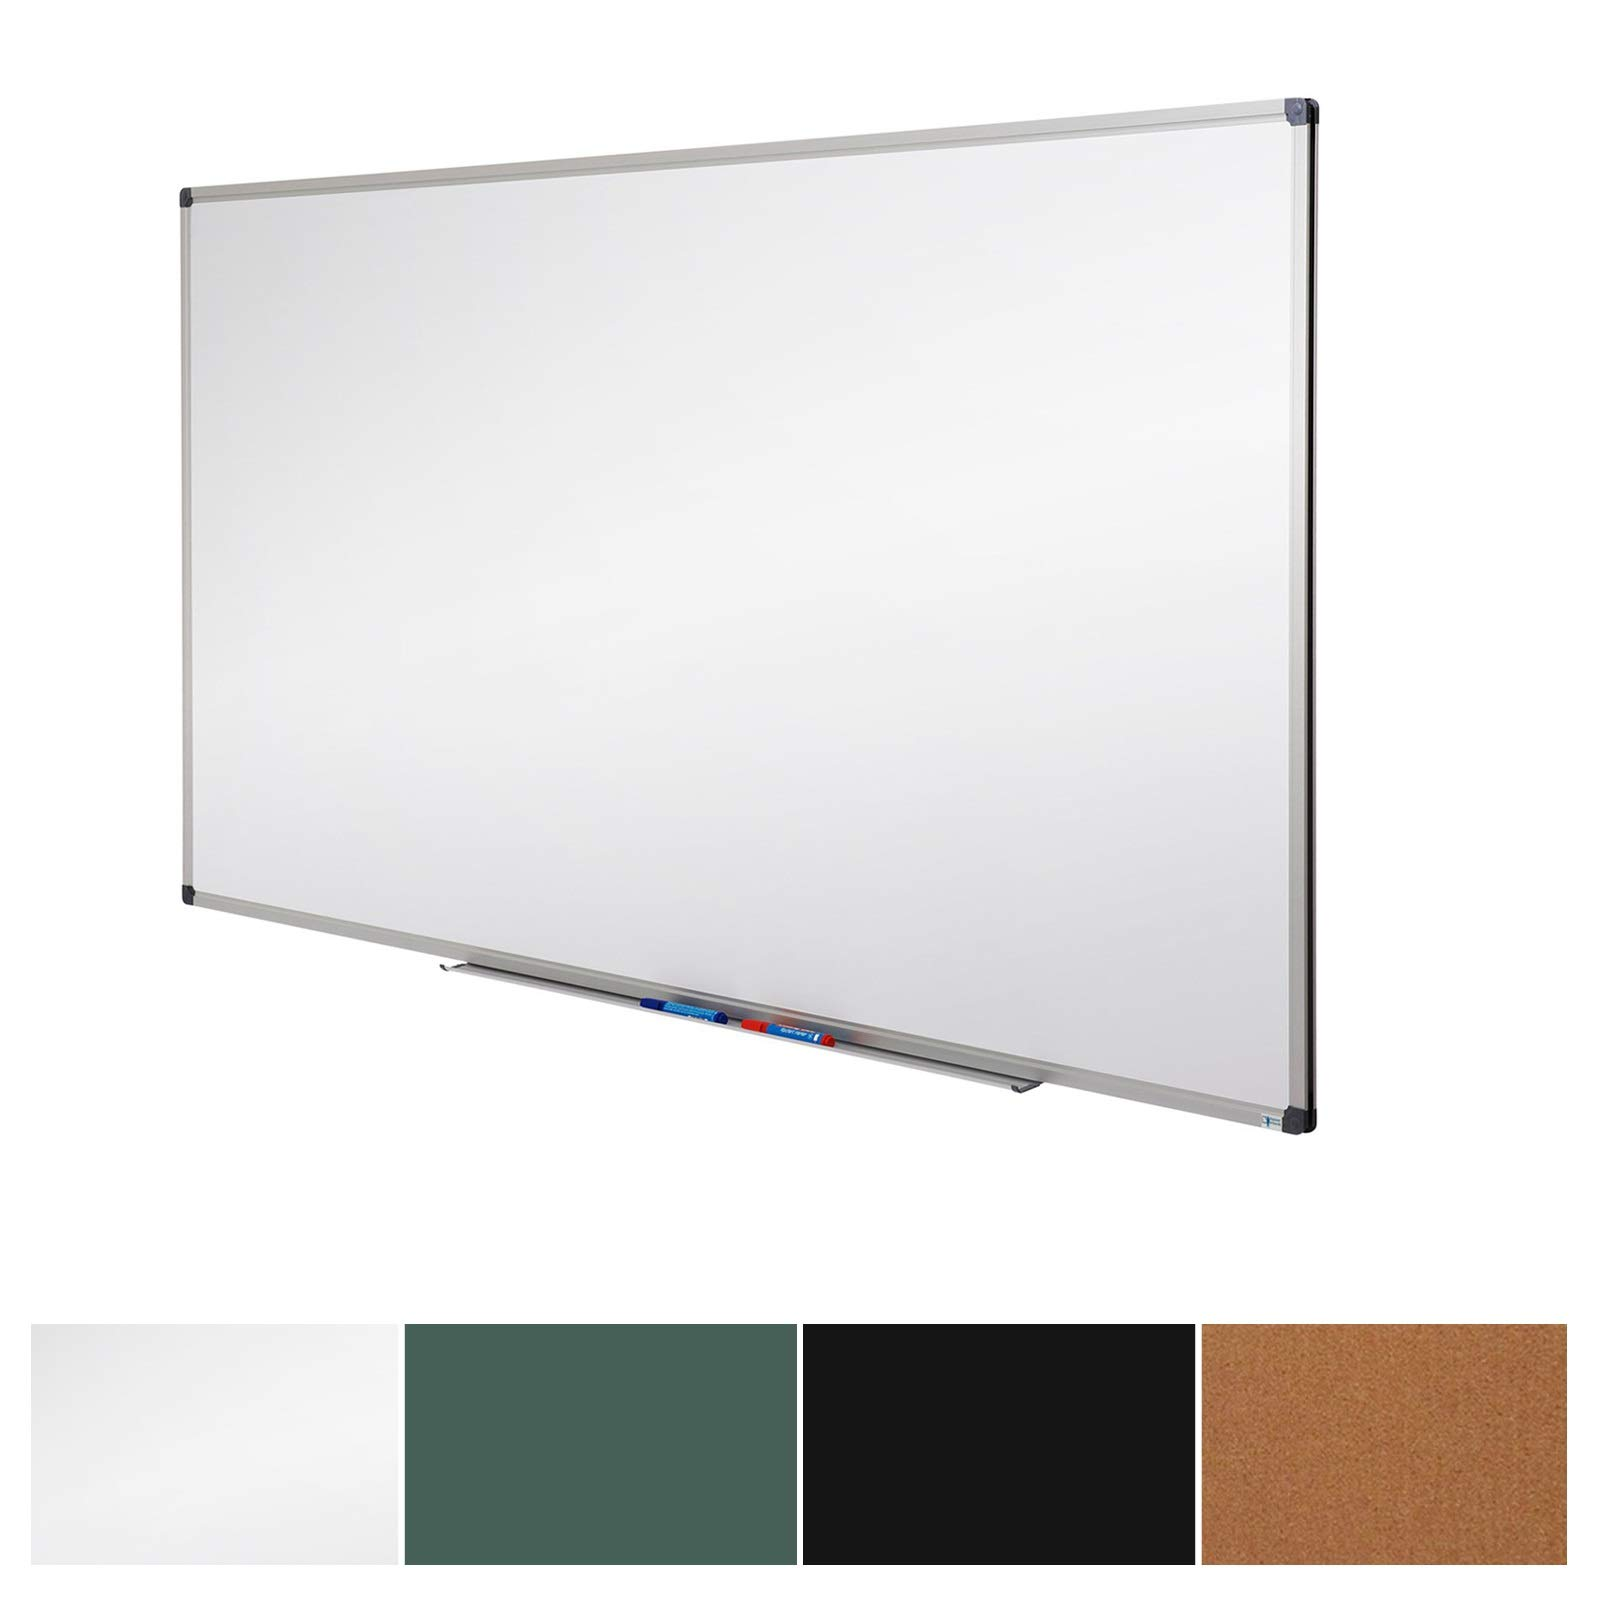 Master of Boards White Board | Magnet Dry Erase Board | Magnetic Message and Memo Planner for Commercial or Private Use | 4 Sizes | 44'' x 32''